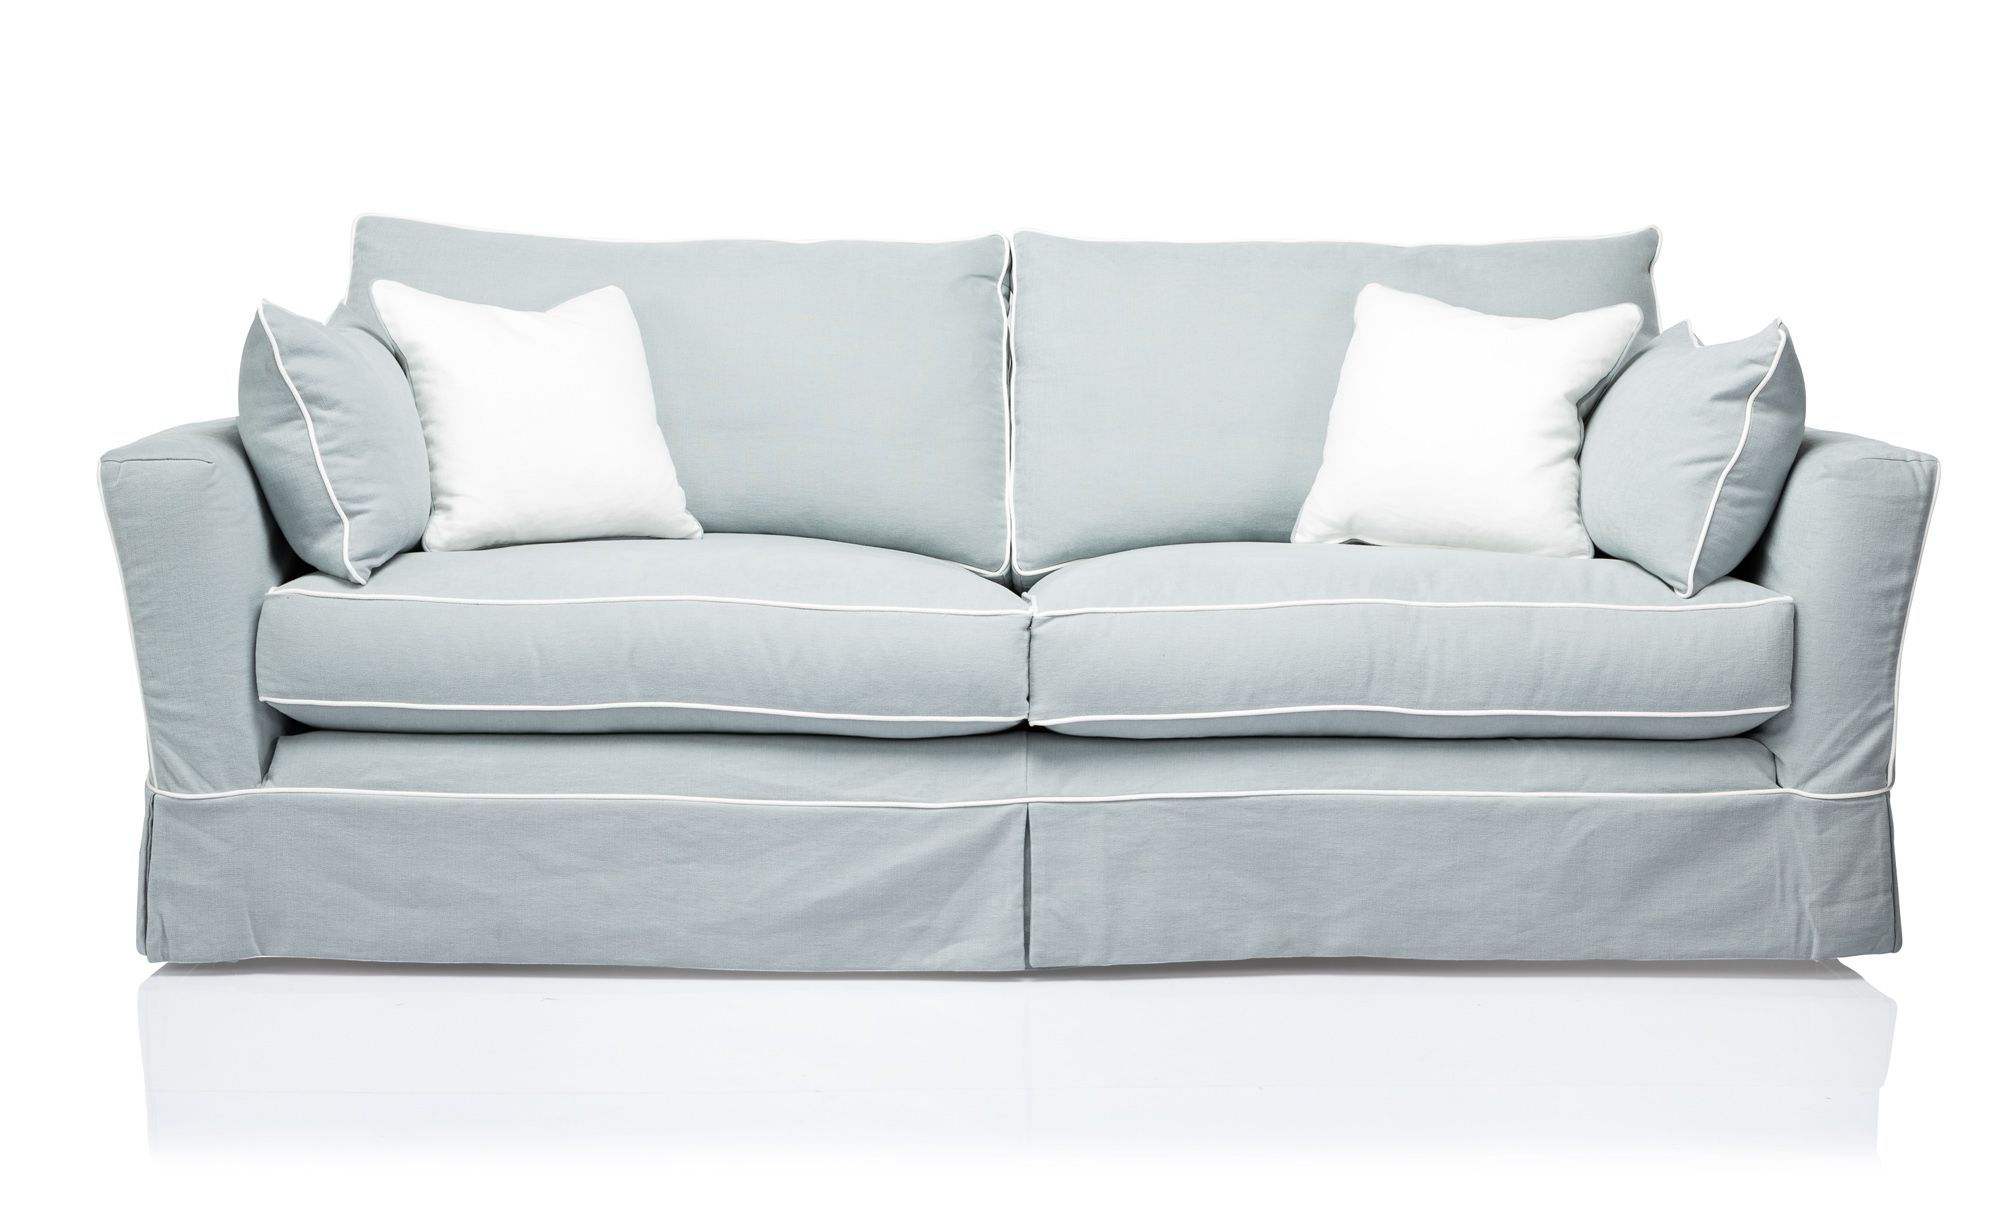 COCO REPUBLIC East Hampton sofa beach Hamptons